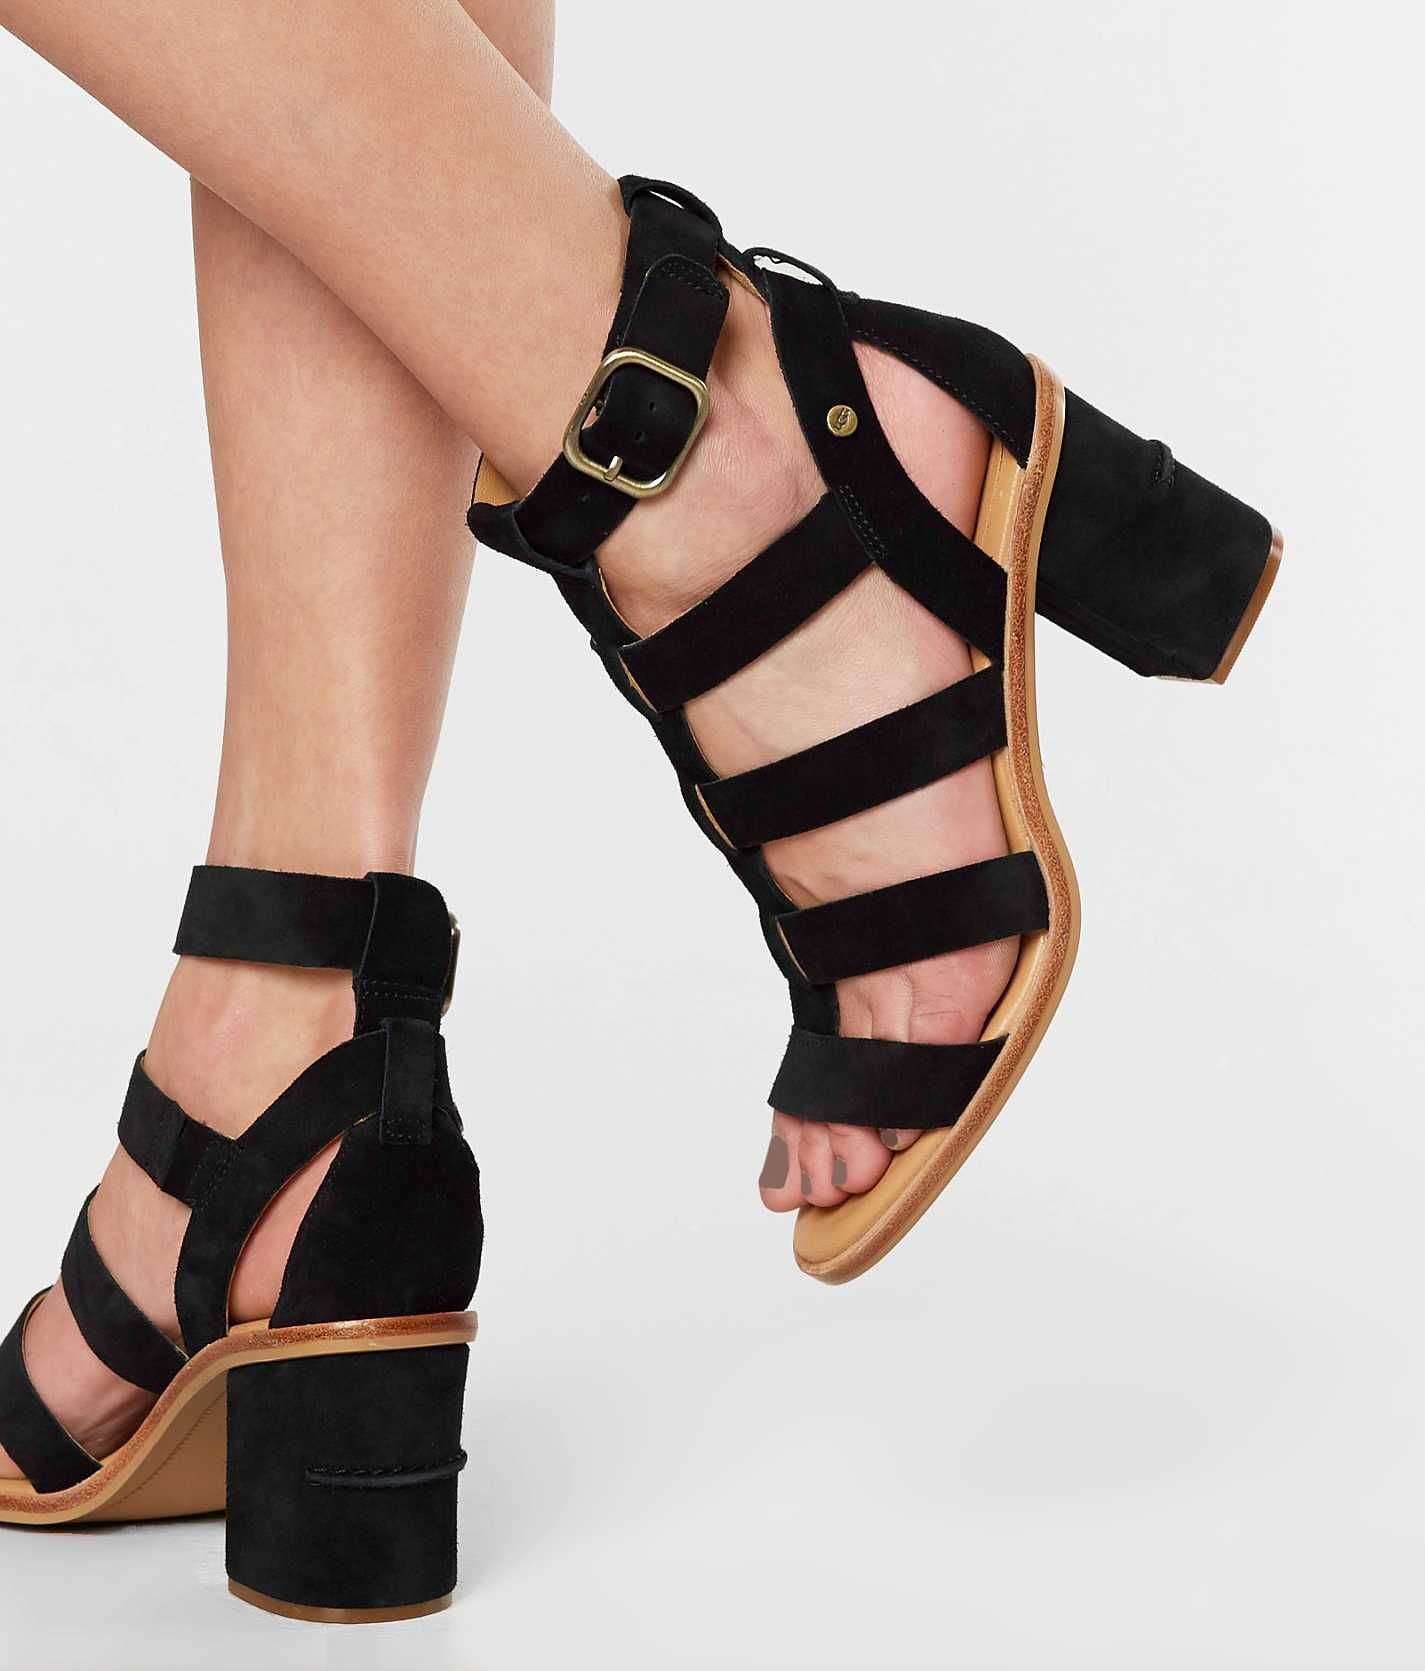 e263fe71a4e UGG® Macayla Heeled Sandal - Women's Shoes in Black | Buckle | Shoes ...